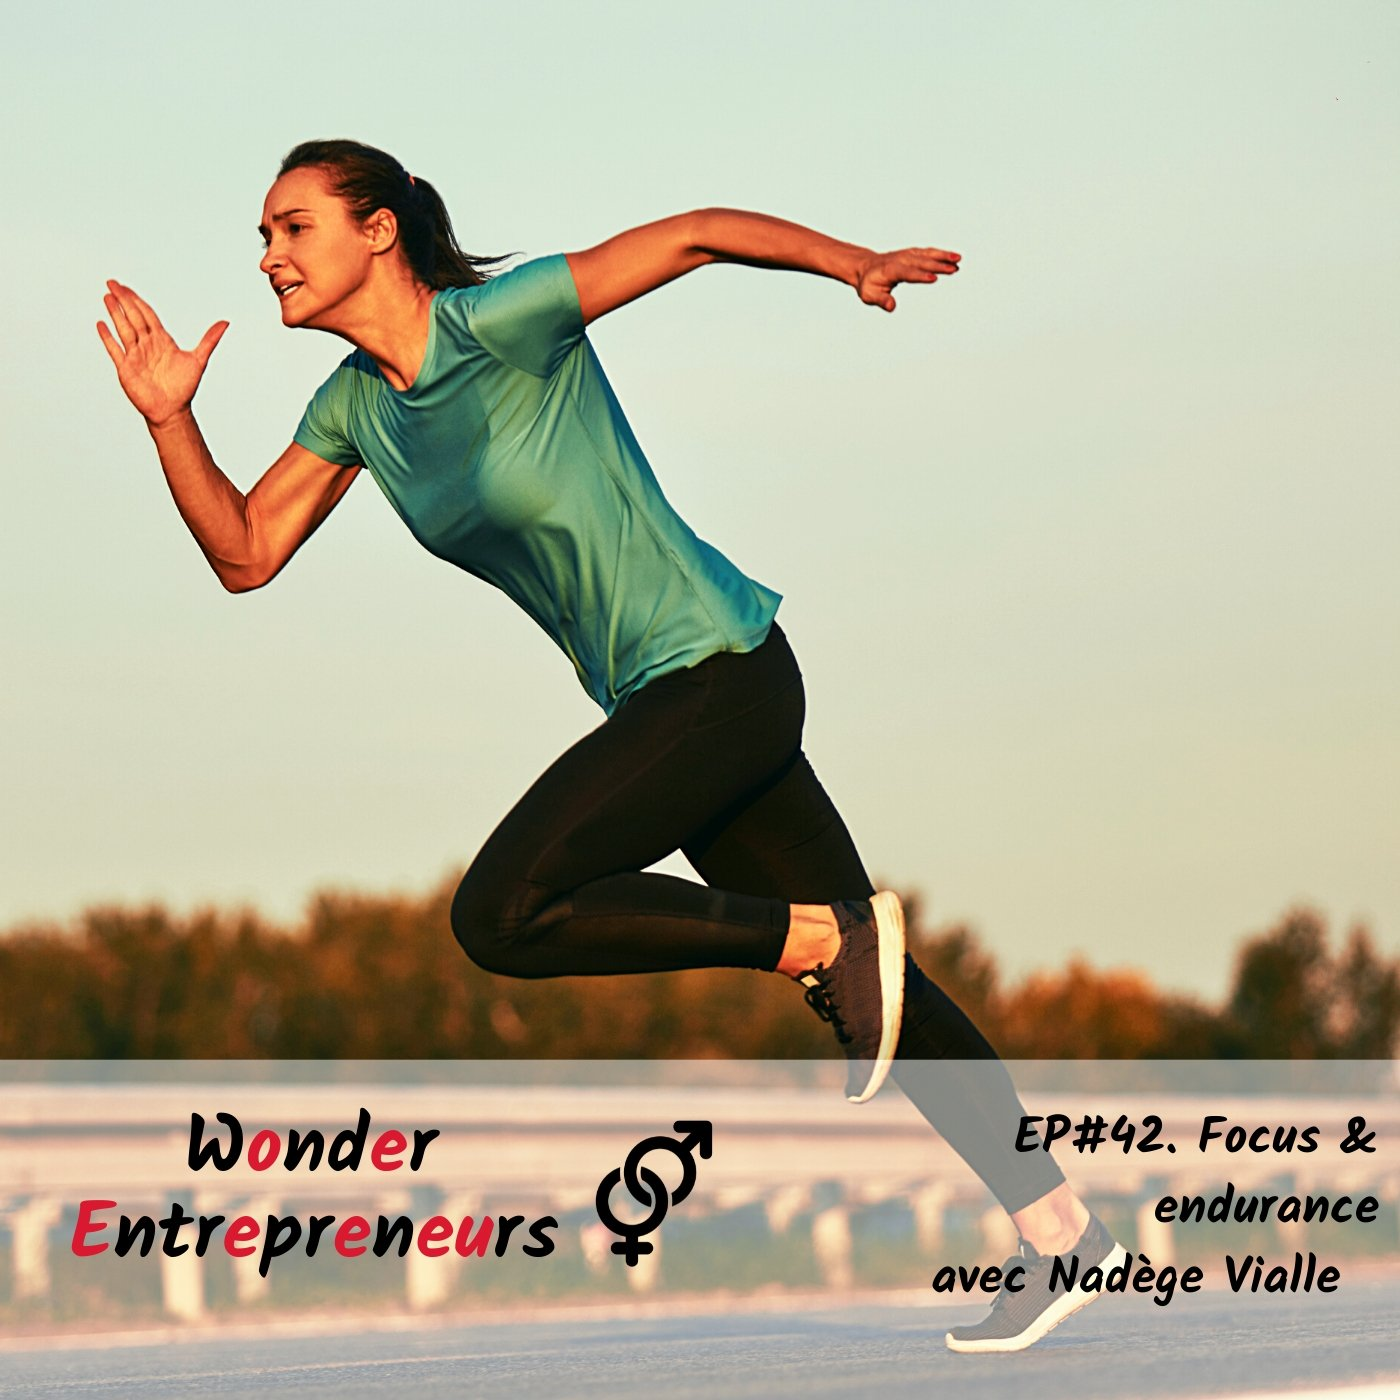 EP 42 Focus et Endurance Podcast Wonder entrepreneurs